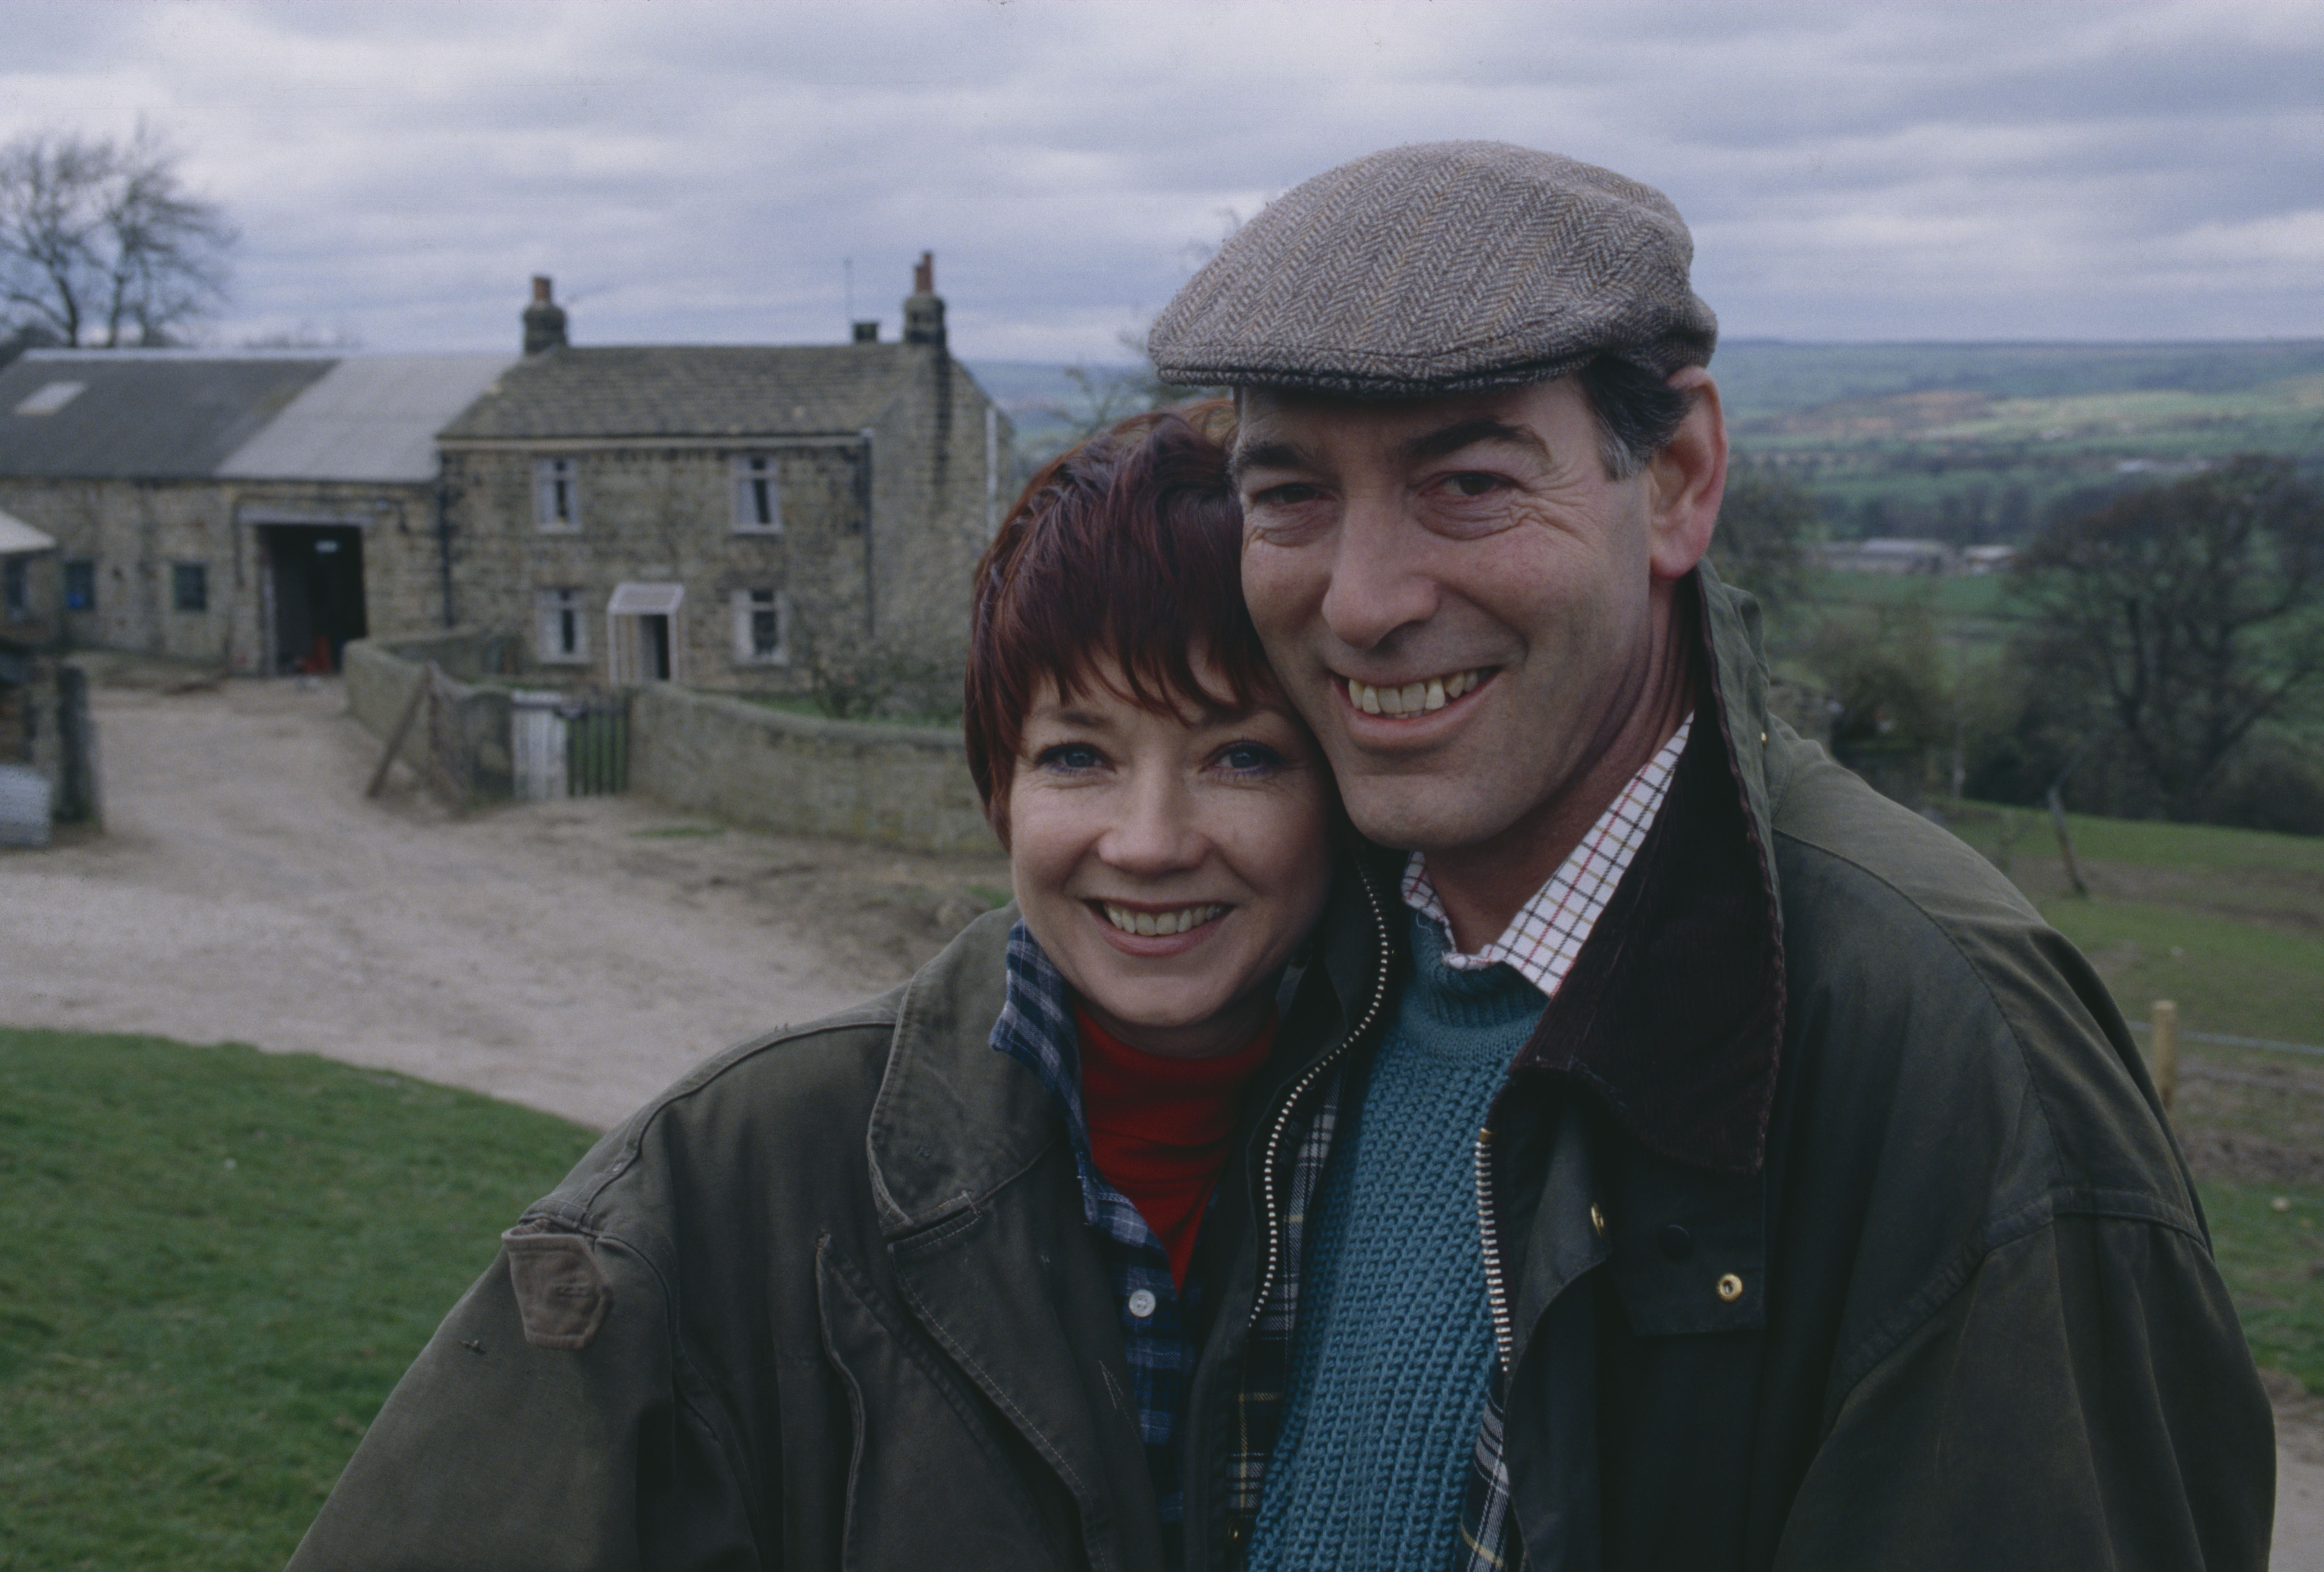 Editorial use only Mandatory Credit: Photo by ITV/Shutterstock (8105575m) Madeleine Howard (as Sarah Connolly) and Clive Hornby (as Jack Sugden) as the Sugdens move into Hawthorn Cottage farm (Ep 1758 - 22nd April 1993) 'Emmerdale' TV Series - - 22 Apr 1993 Emmerdale Farm is a long-running British soap opera set in Emmerdale, a fictional village in the Yorkshire Dales. Created by Kevin Laffan, it first broadcast on 16 October 1972 and produced by ITV Yorkshire.